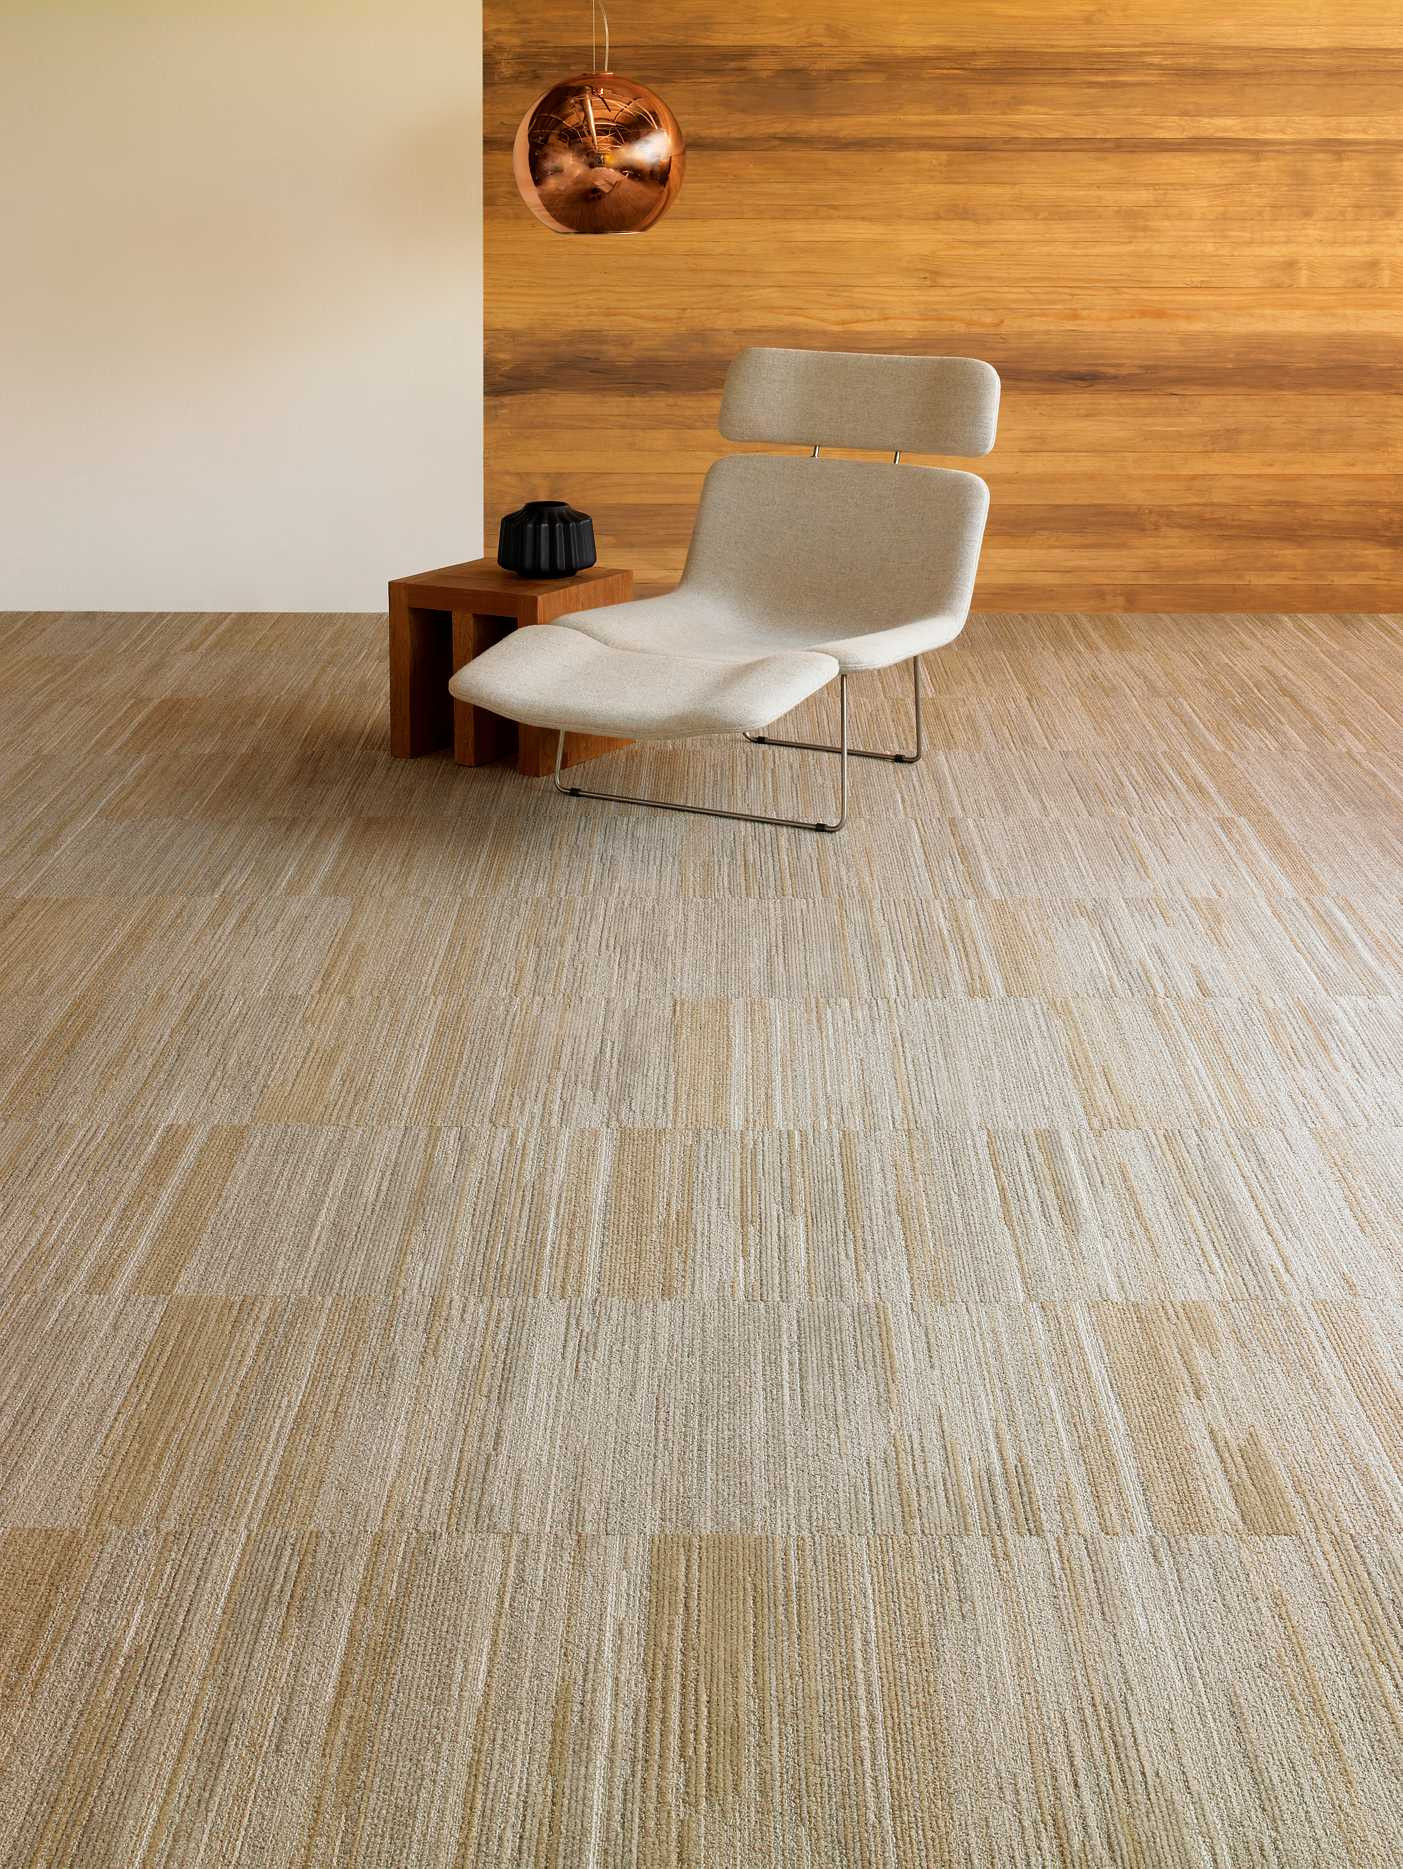 hardwood floor cleaning services chicago of ingrain tile 59339 shaw contract shaw hospitality in 59339